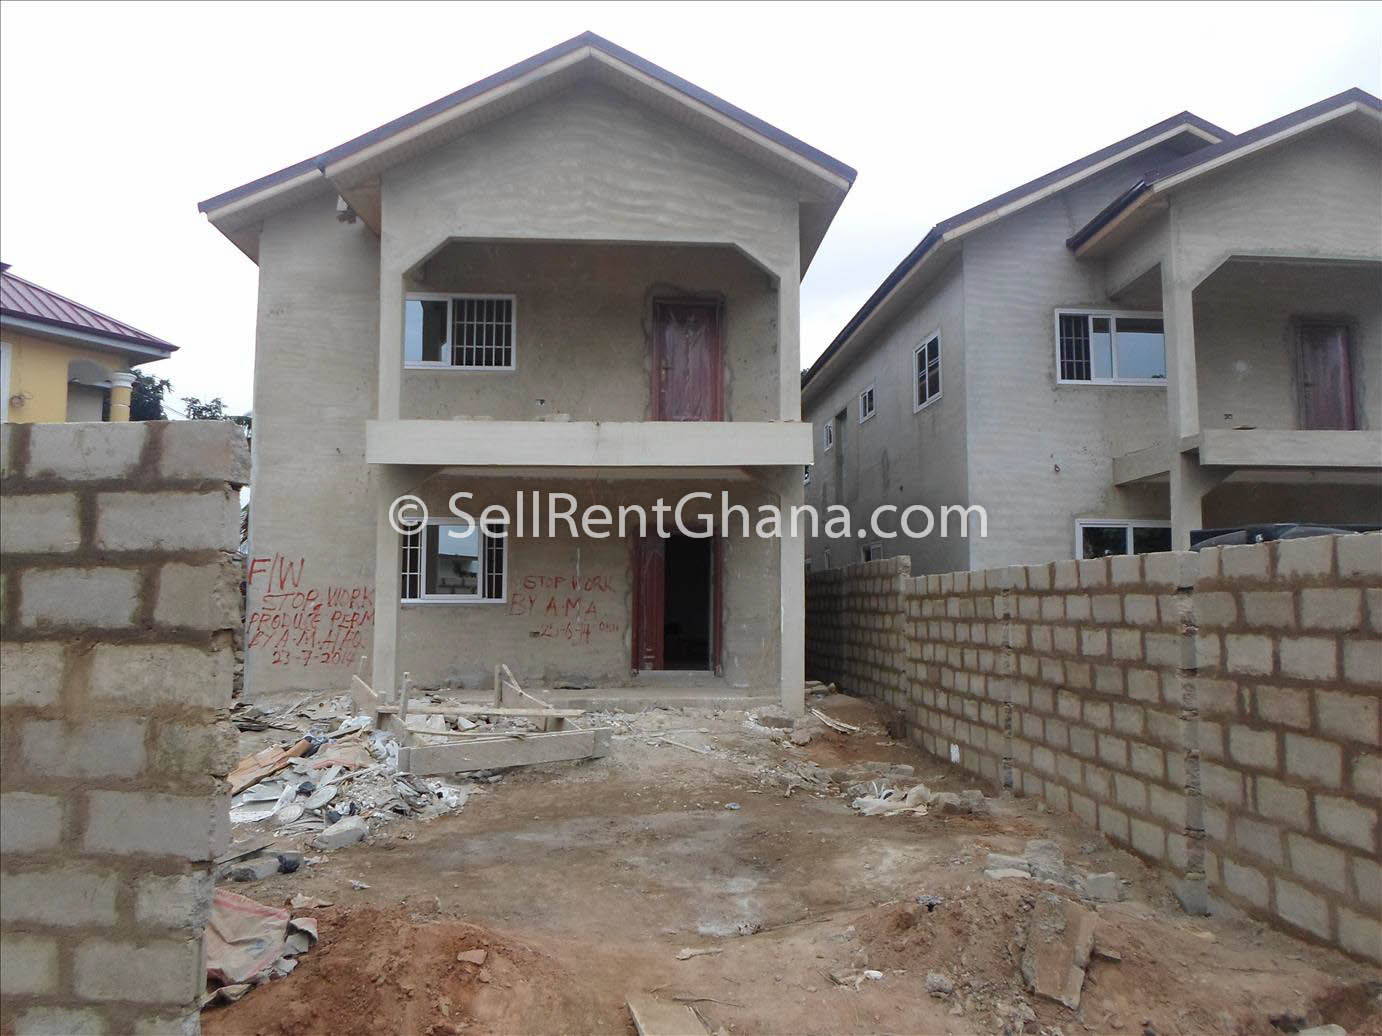 2 Bedroom Bath House For Rent Carmichael Ca in addition Pig House Plans In Ghana besides Estates In Accra Ghana Houses For Sale likewise Log Cabin Homes For Sale Near Me also 2 Bedroom Bath House For Rent Carmichael Ca. on estates in accra ghana houses for sale